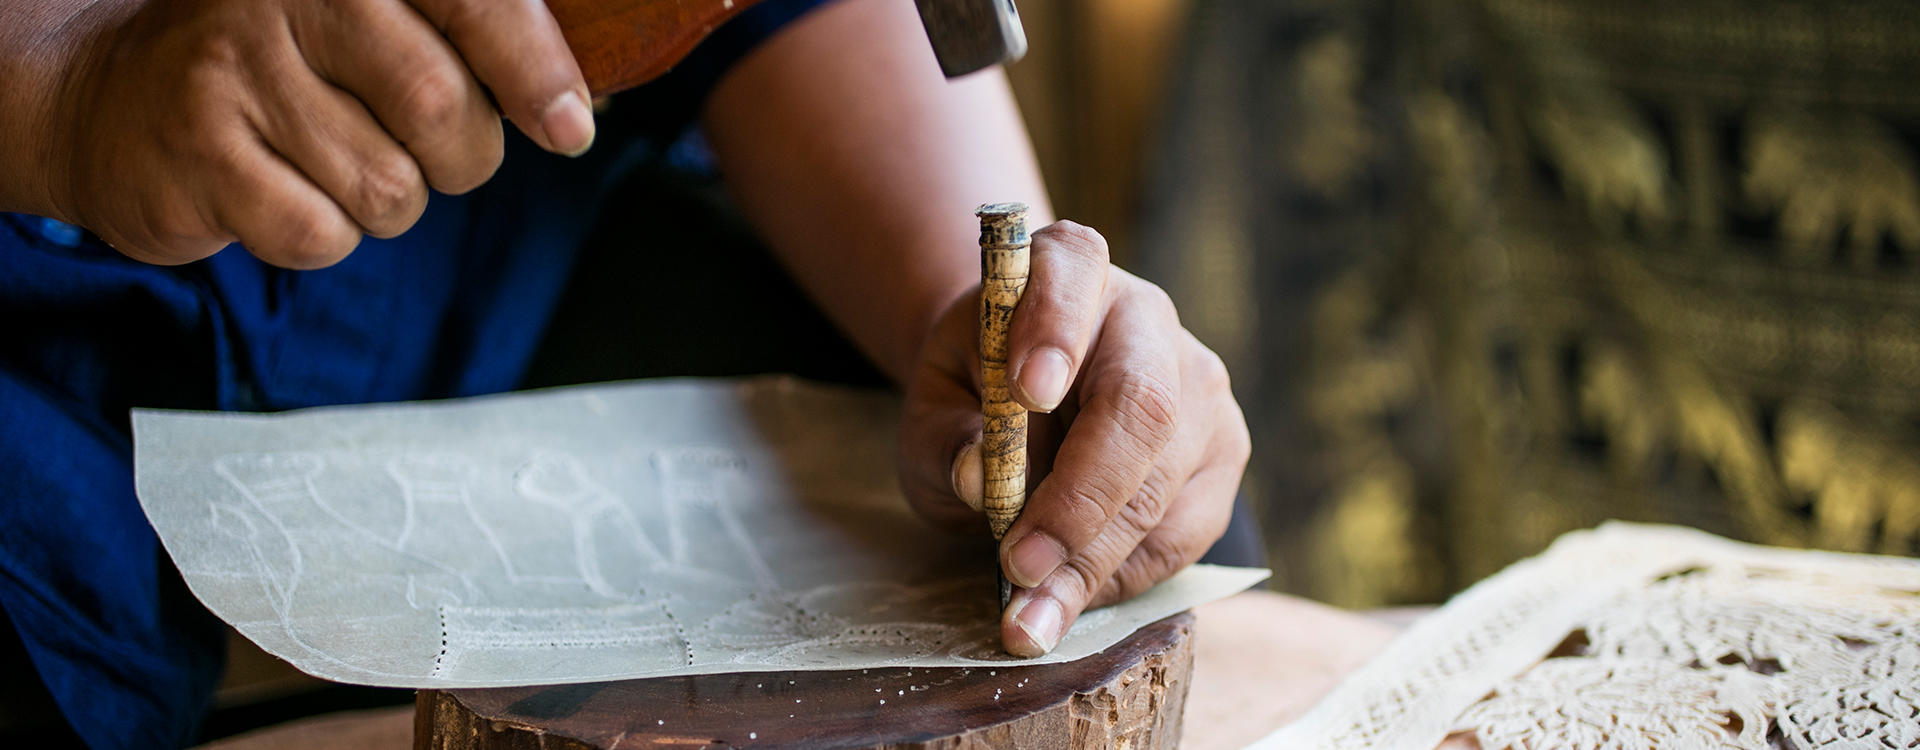 OU-Koh-Samui_Art-of-Traditional-Leather-Carving